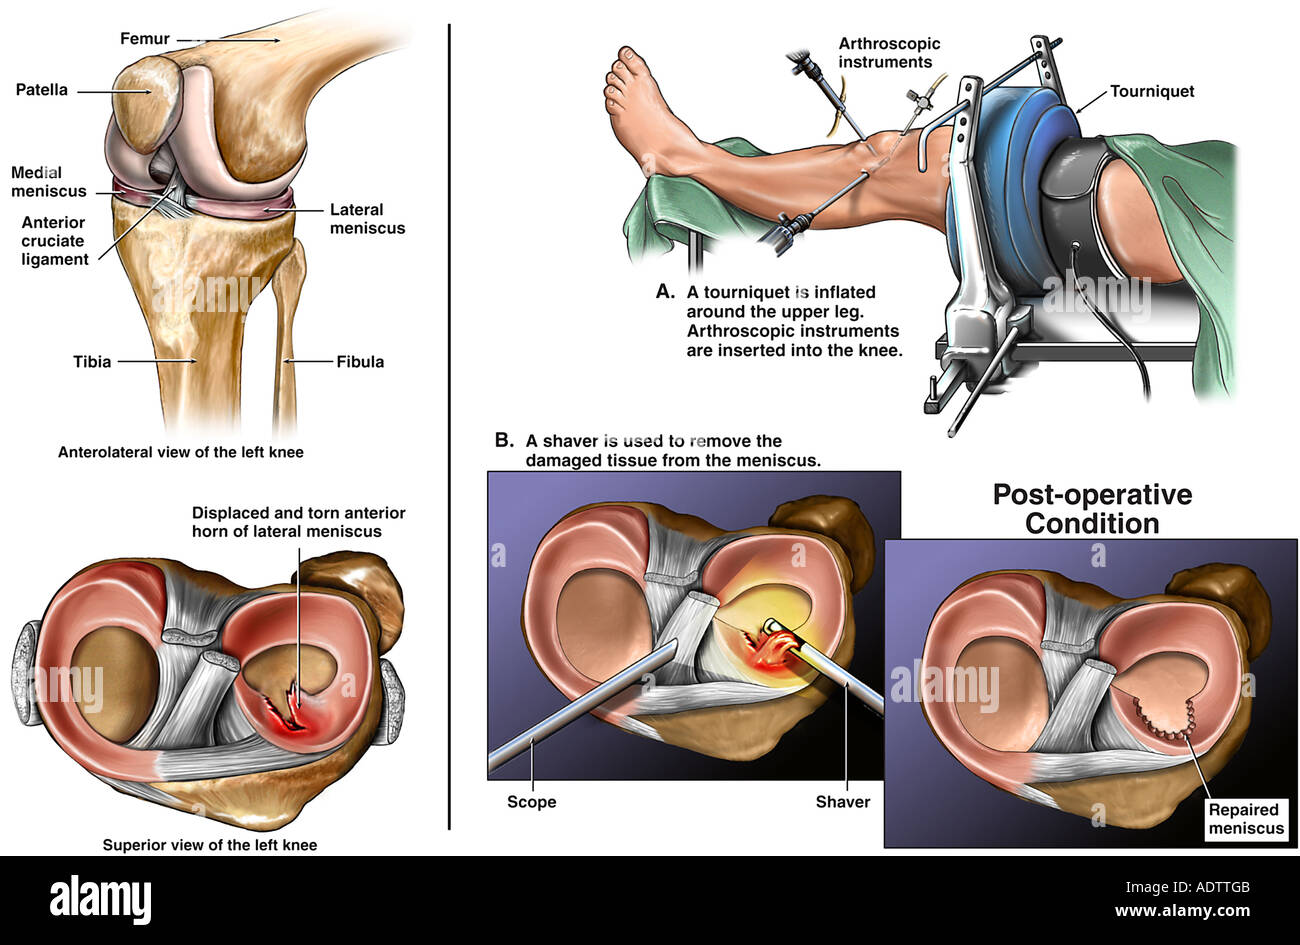 Lateral Meniscus Stock Photos & Lateral Meniscus Stock Images - Alamy